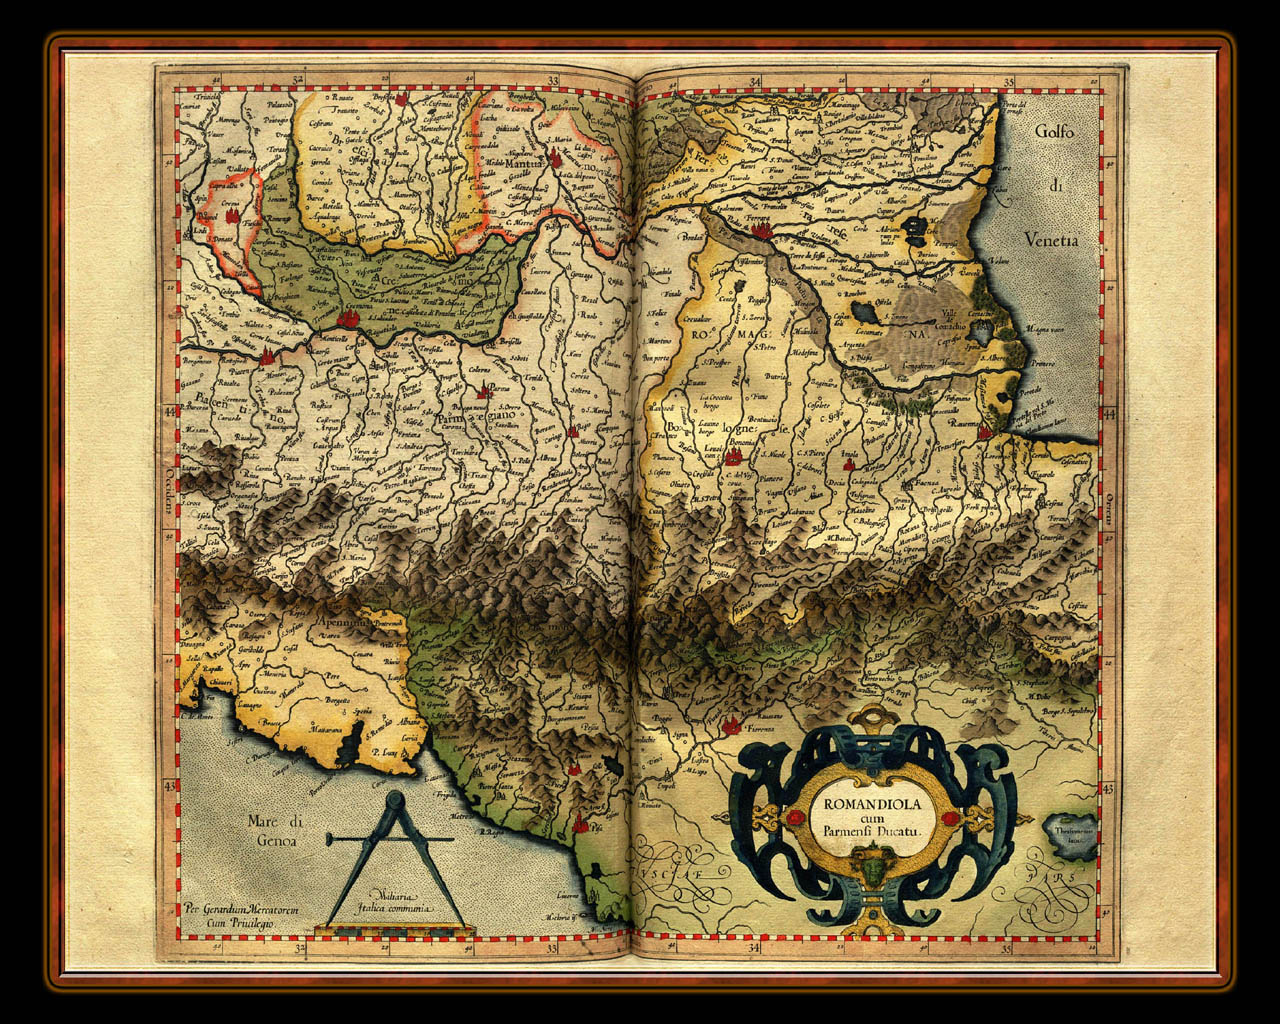 """Gerhard Mercator 1595 World Atlas - Cosmographicae"" - Wallpaper No. 18 of 106. Right click for saving options."